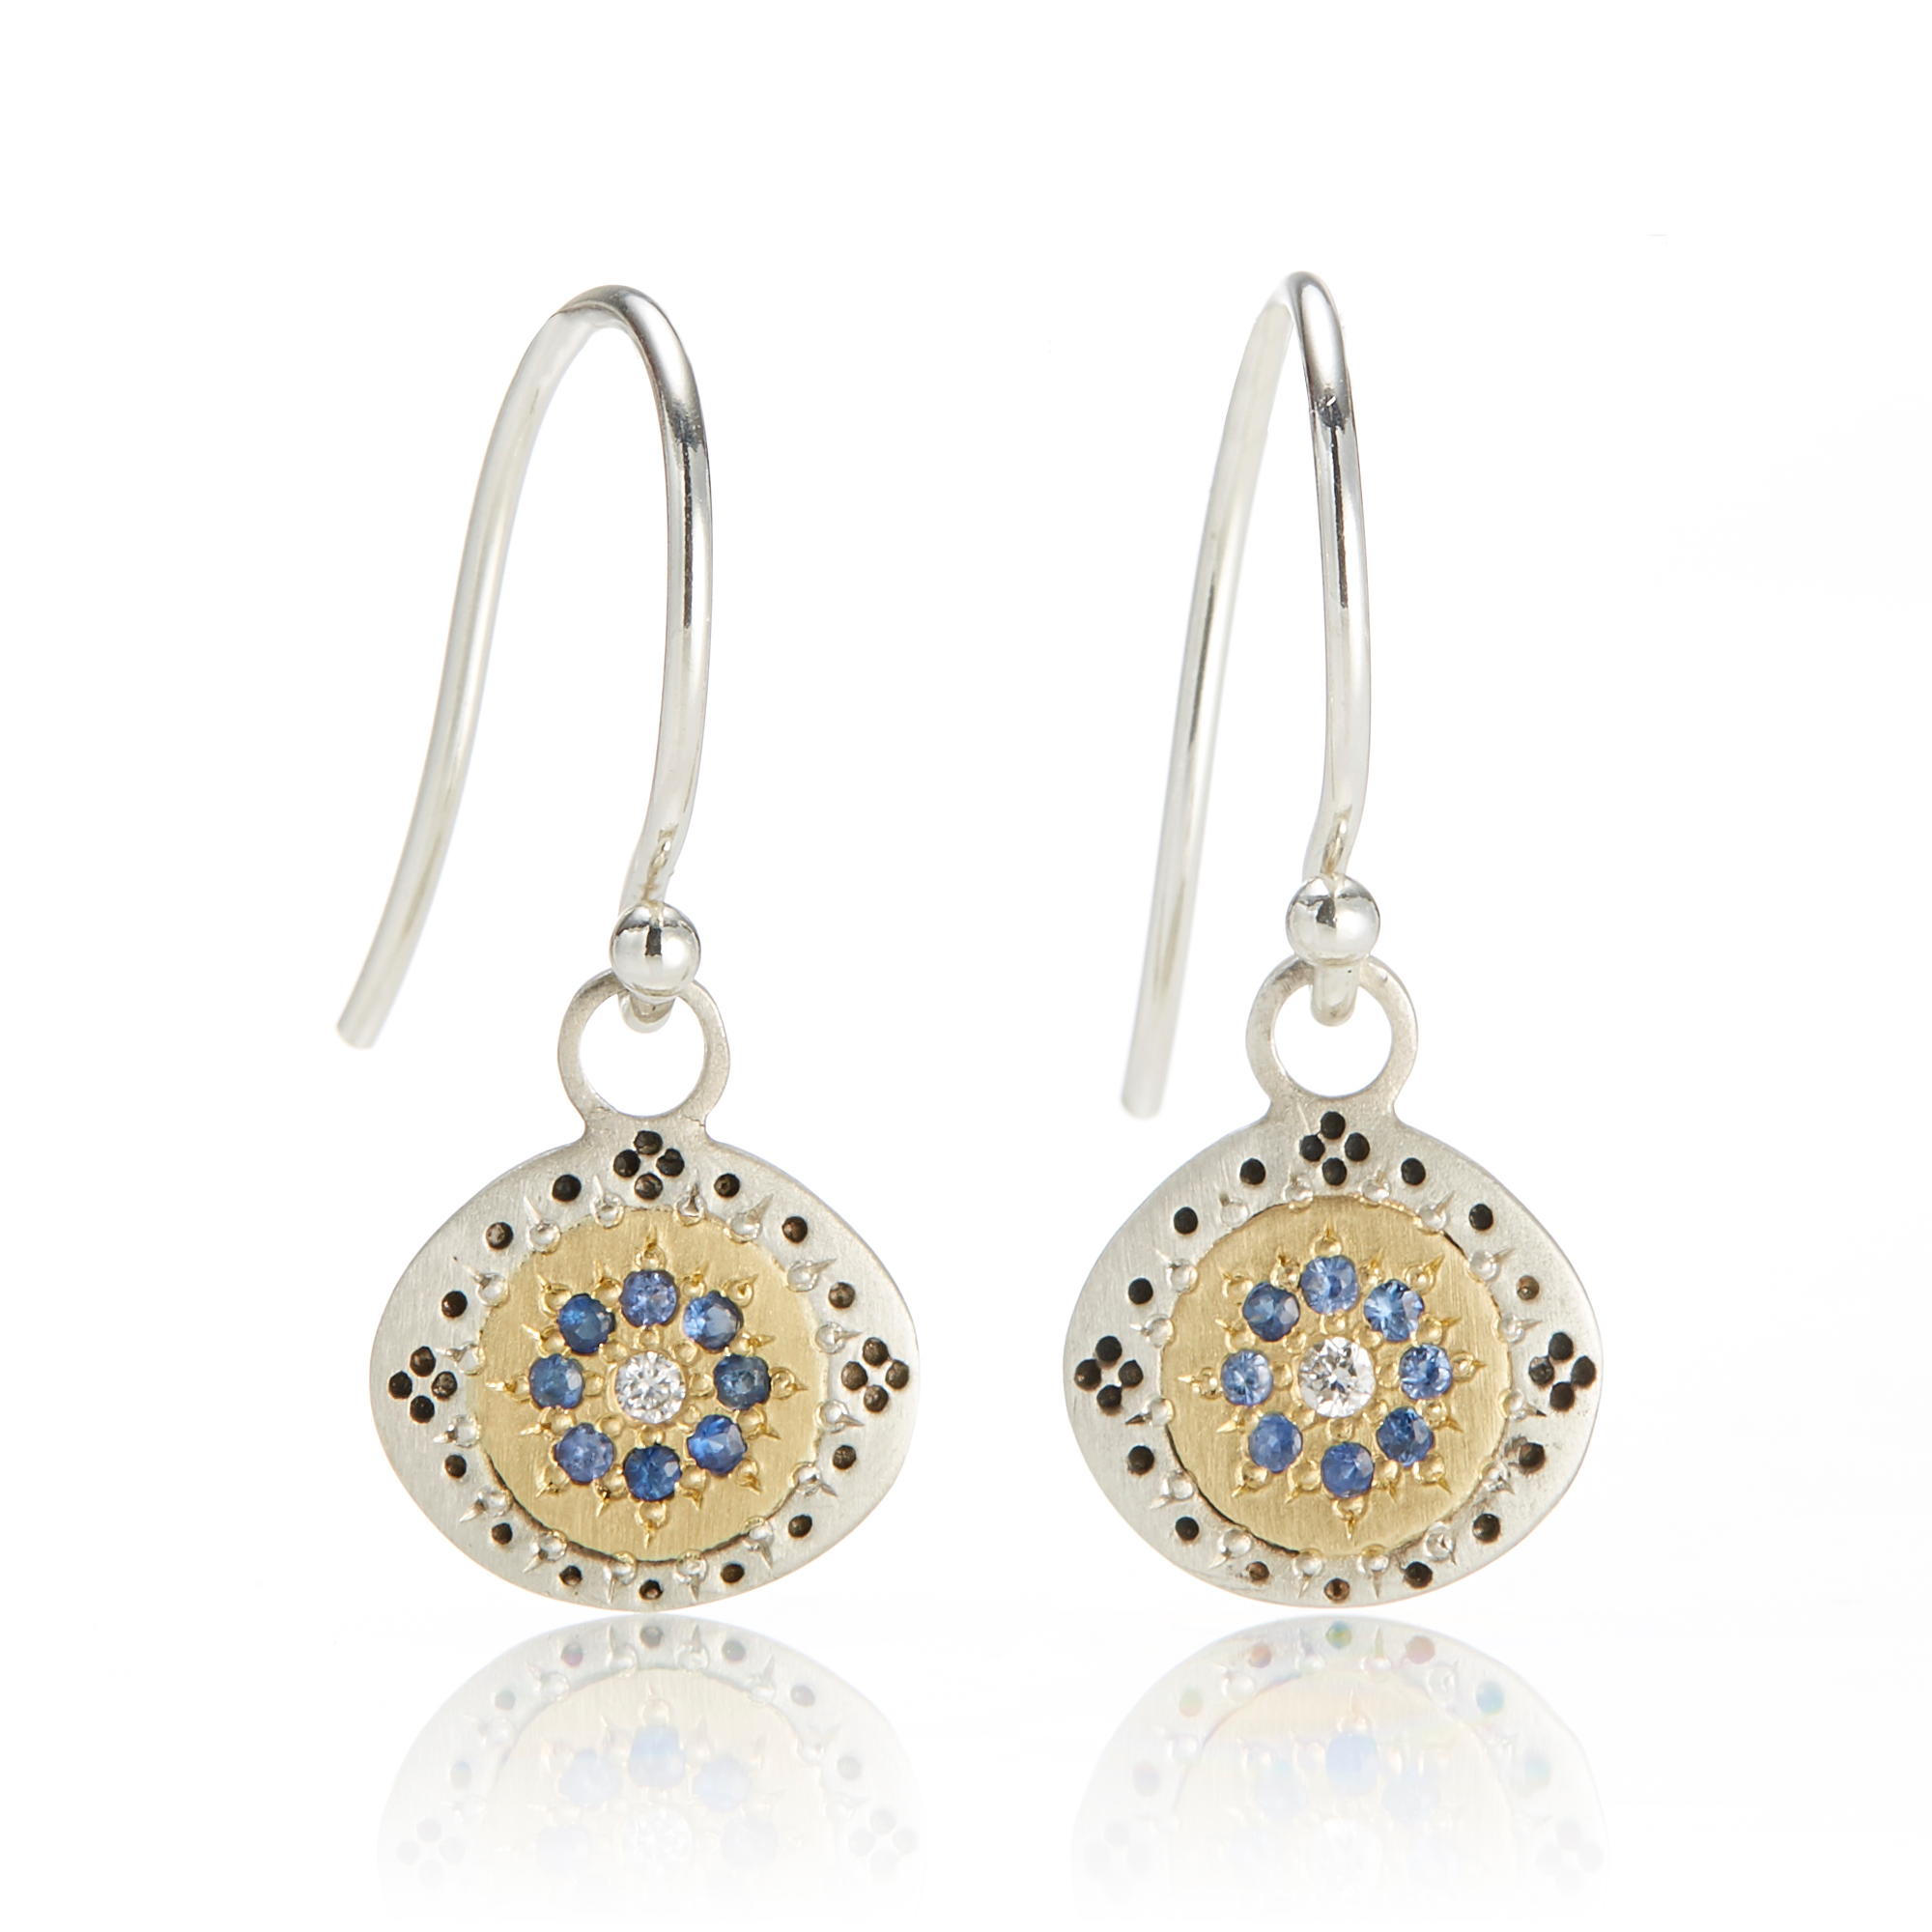 Adel Chefridi Seeds of Harmony Sapphire Drop Earrings